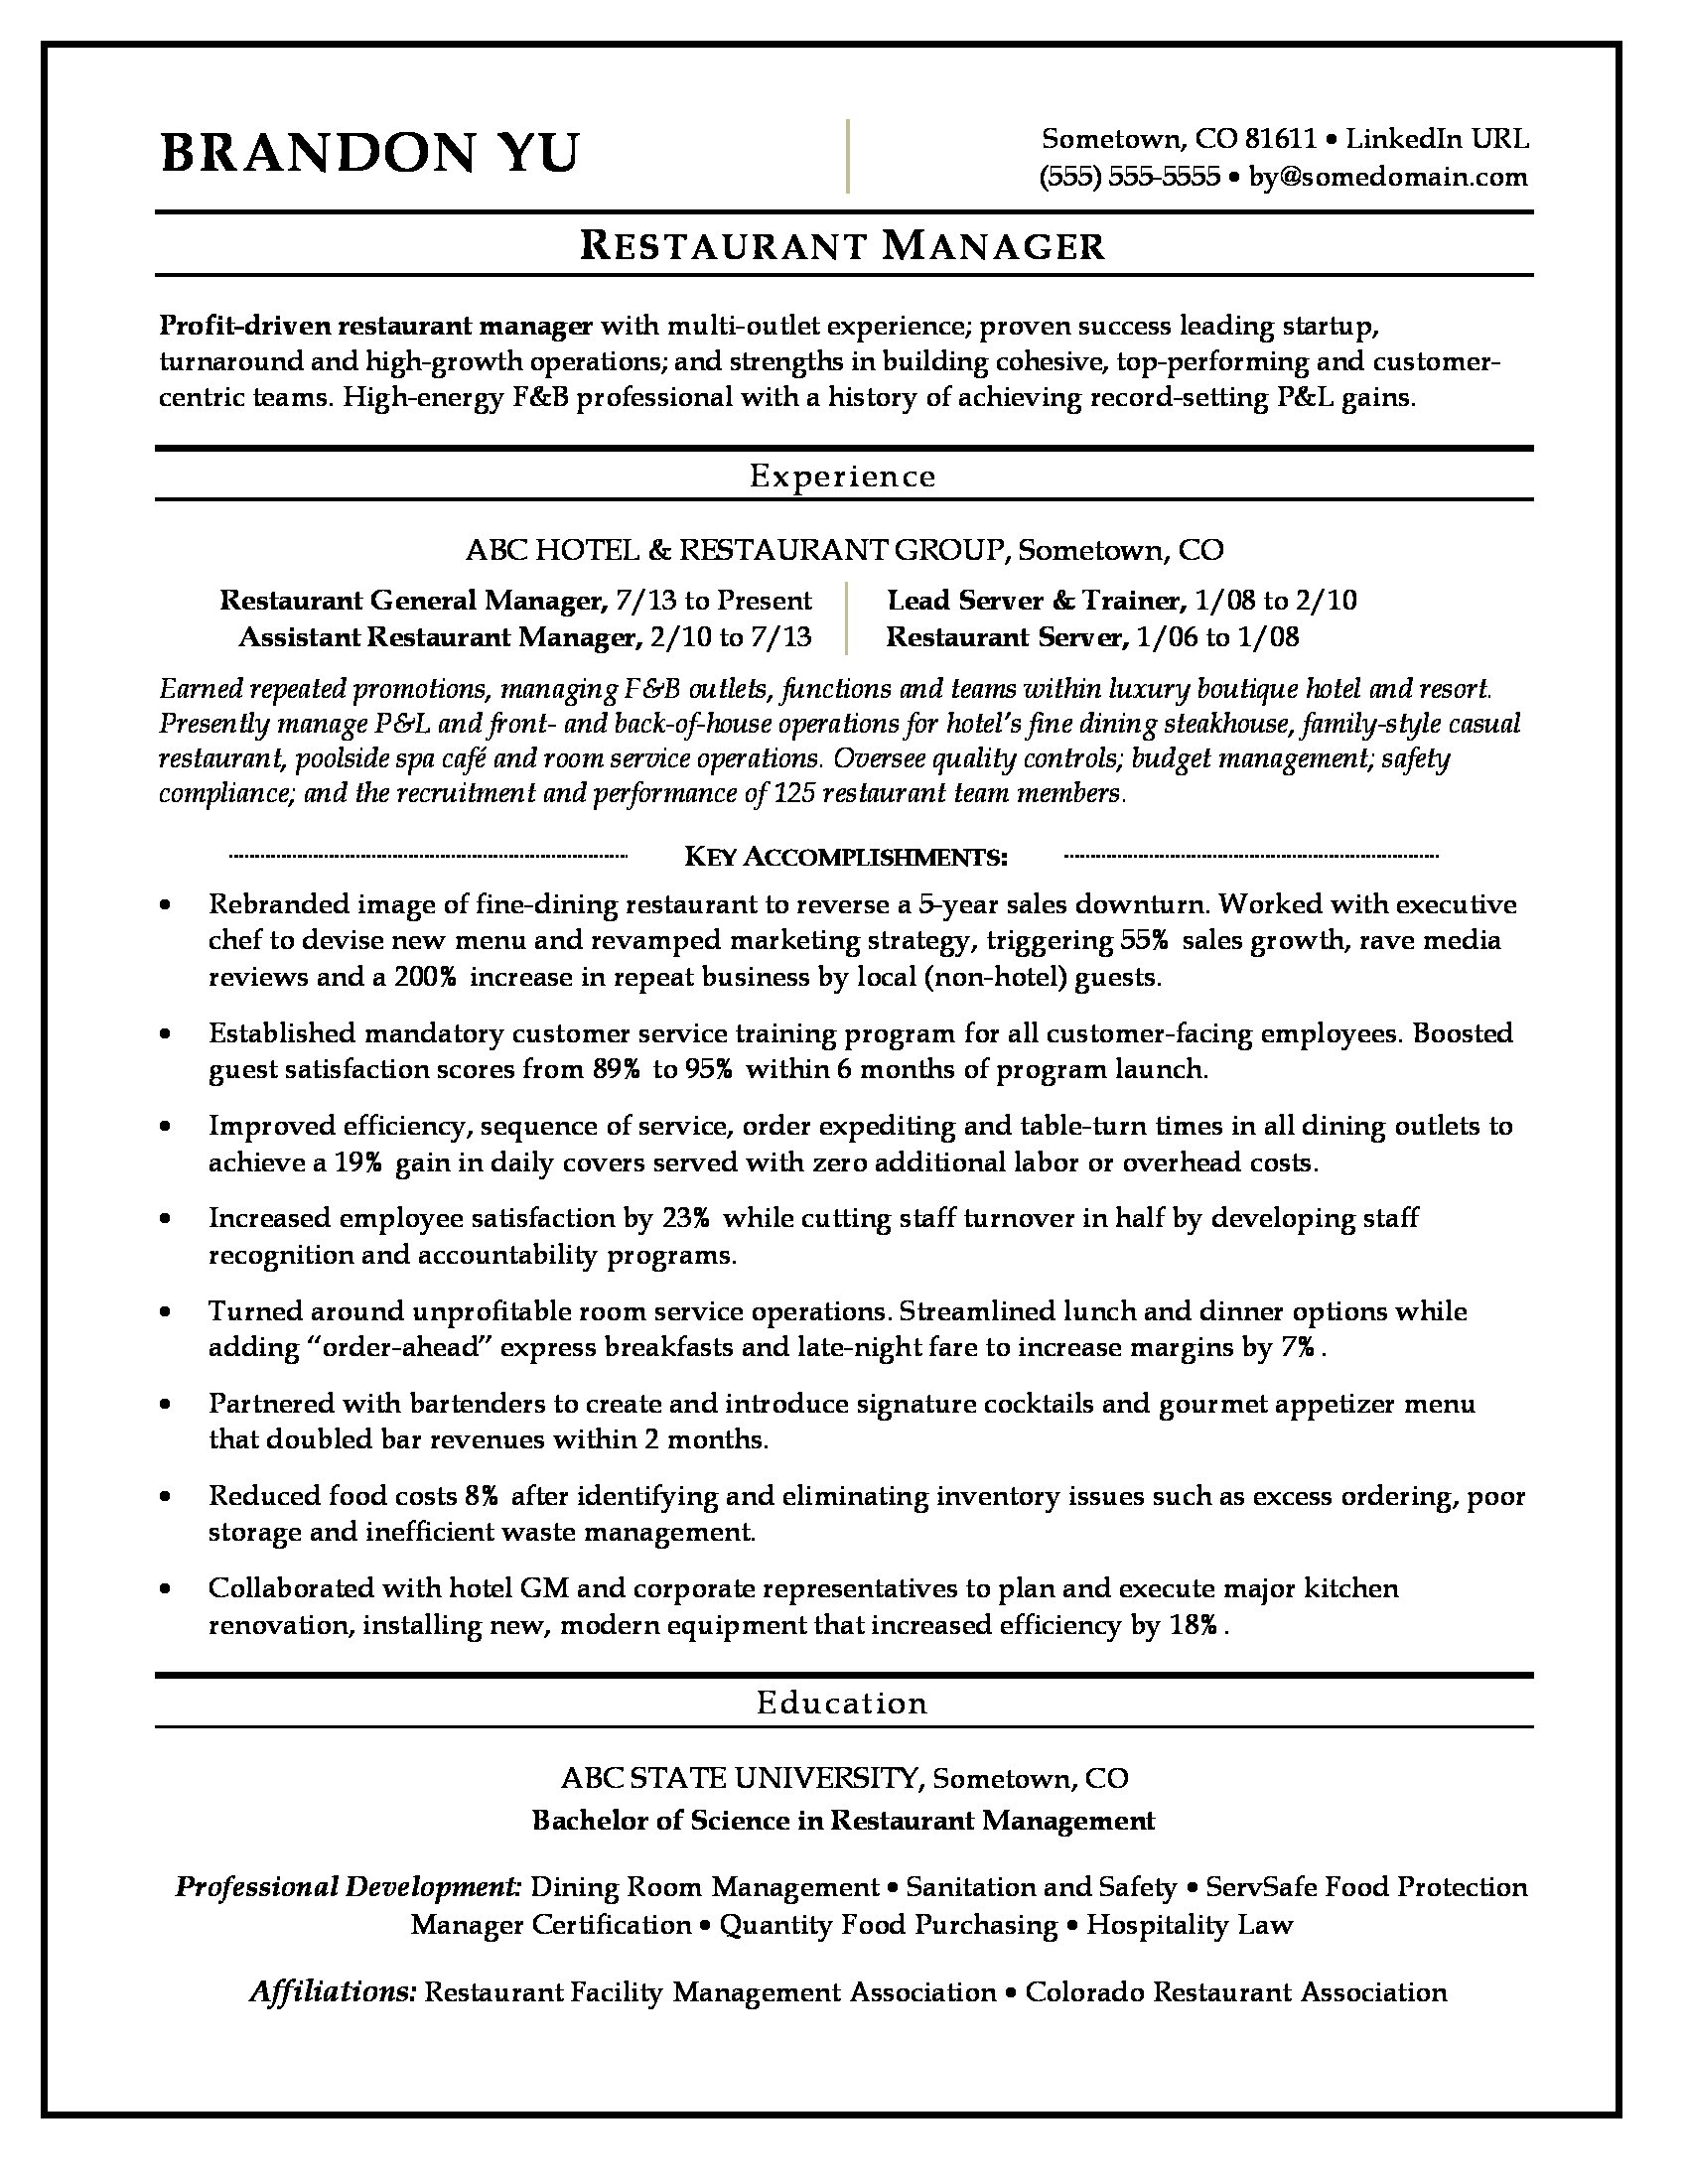 Superb Sample Resume For A Restaurant Manager With Restaurant Manager Resume